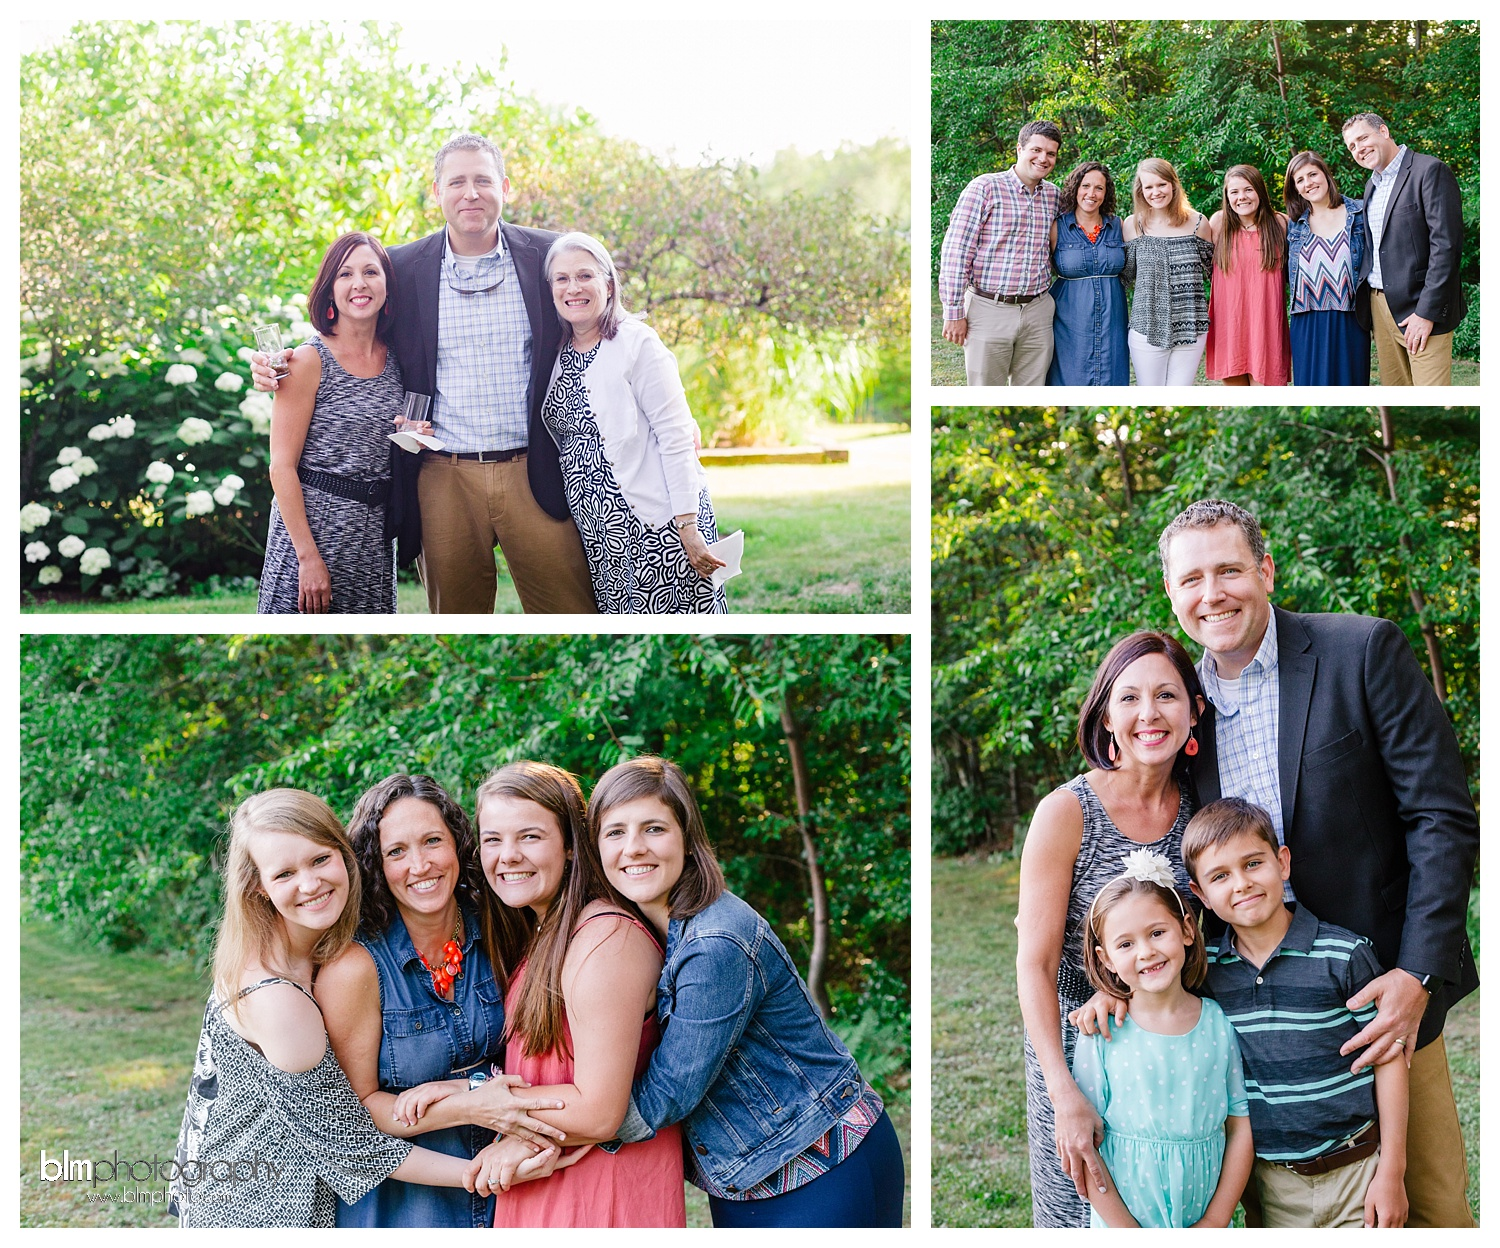 163,2017,20170729,91,Artistic,BLM,Candid,Creative,Dublin,Family Photography,Family party,Family photos,Home,Learned,Learned Rd,Learned Road,Martha Duffy,NH,NH Family Photographer,NH Wedding,Natural,Natural Light,Niles,Niles Family,Outdoor,Personal,Pet,Peterborough Wedding Photographer,Photo,Photographer,Photography,Photojournalistic,Portrait,Professional,Professional Wedding Photography,Rd,Road,USA,United States,Vivid,Wedding Photography,family reunion,www.blmphoto.com,©BLM Photography 2017,